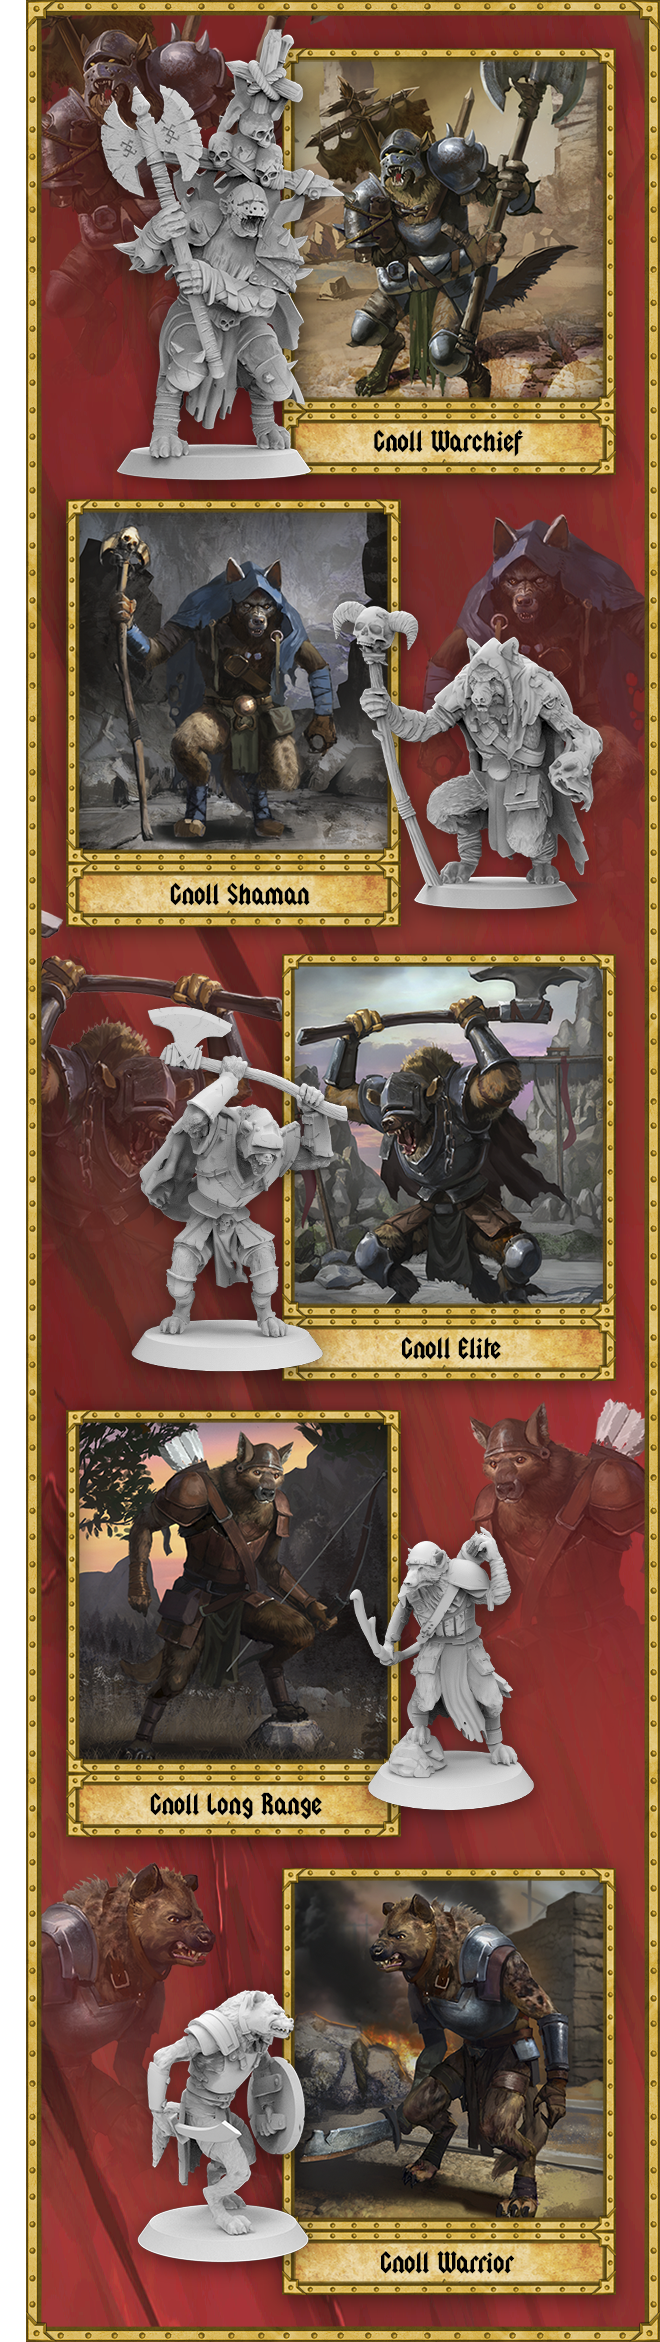 Fierce gnolls will be your enemies in this adventure